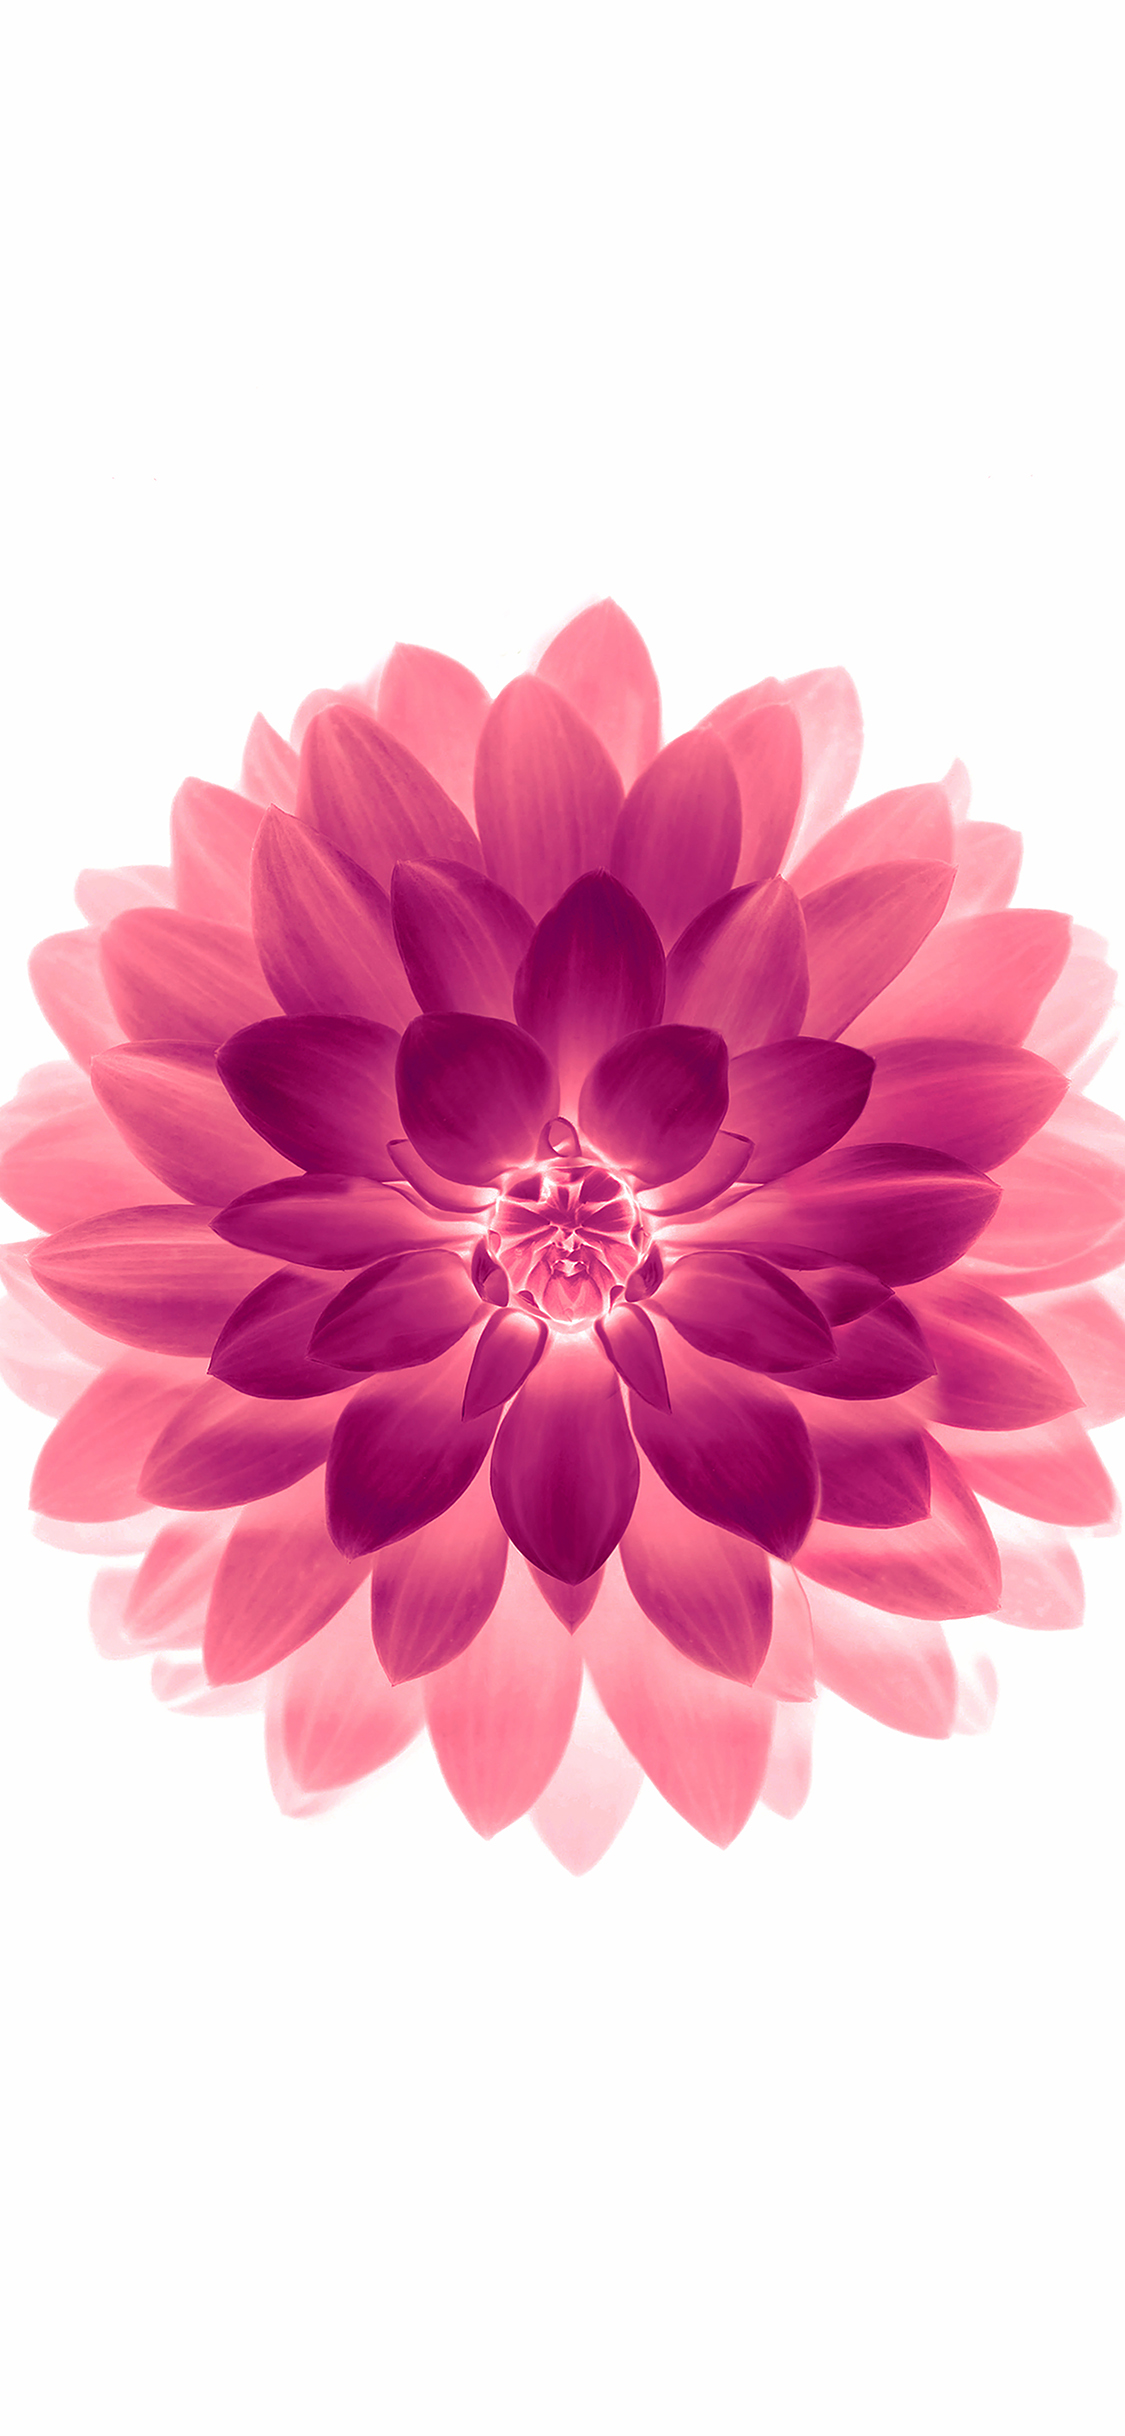 iPhoneXpapers.com-Apple-iPhone-wallpaper-ad77-apple-red-on-white-lotus-iphone6-plus-ios8-flower